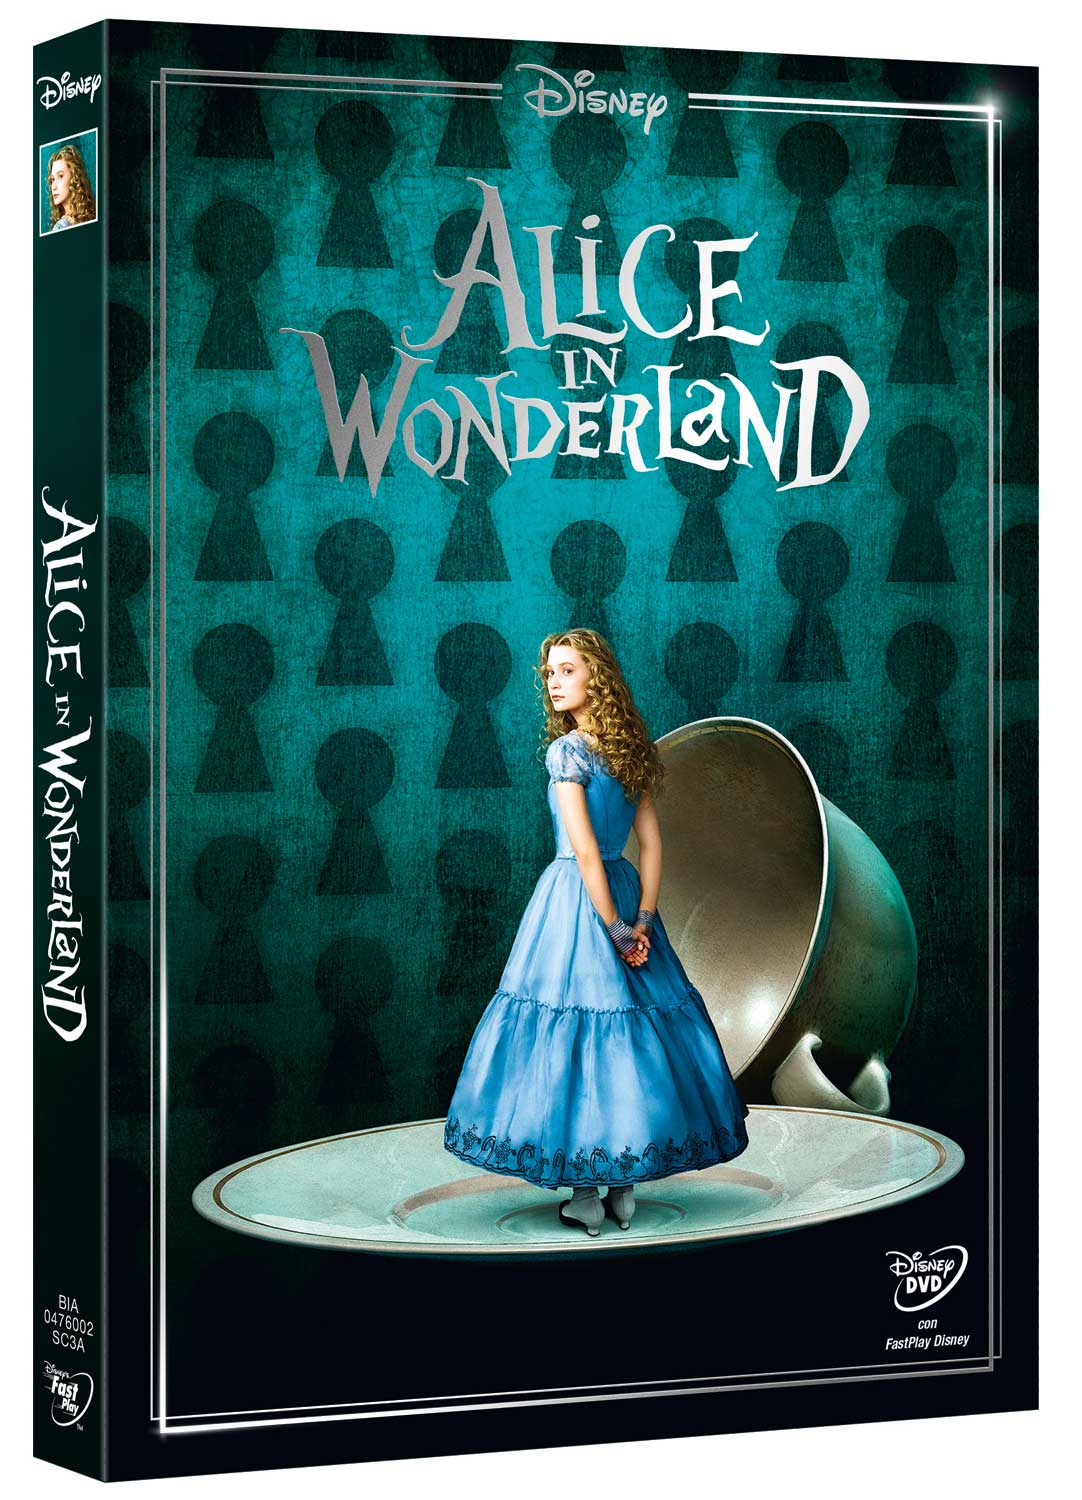 ALICE IN WONDERLAND (LIVE ACTION) (NEW EDITION) - (DVD)